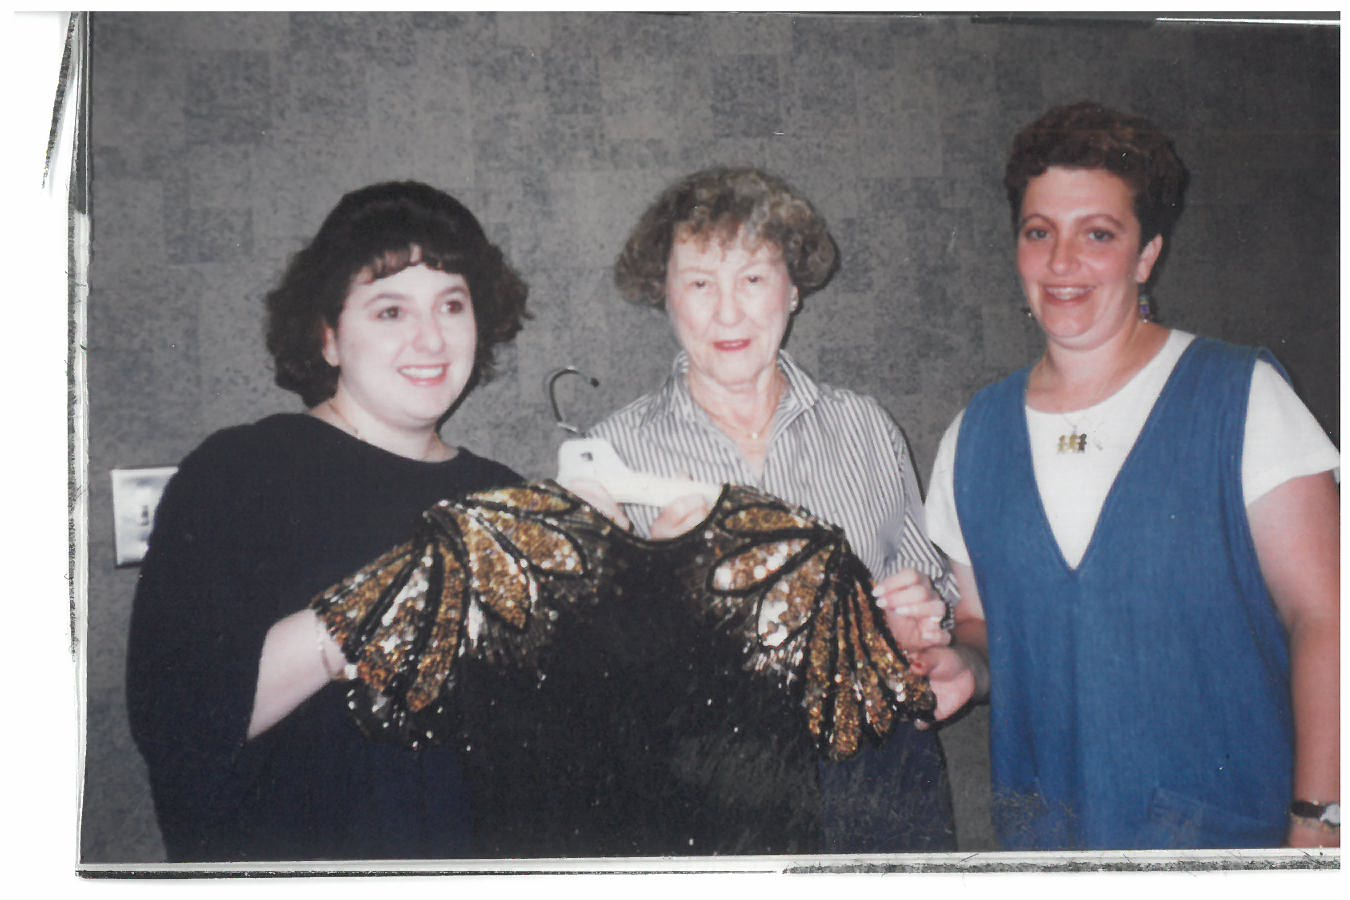 Designer Dress Days founder Liz Faulb, center, is joined by, from left, then-co-chairs Natalie Horowitz and Marilyn Zaas in a mid-1990s photo. Photo credit NCJW/Cleveland